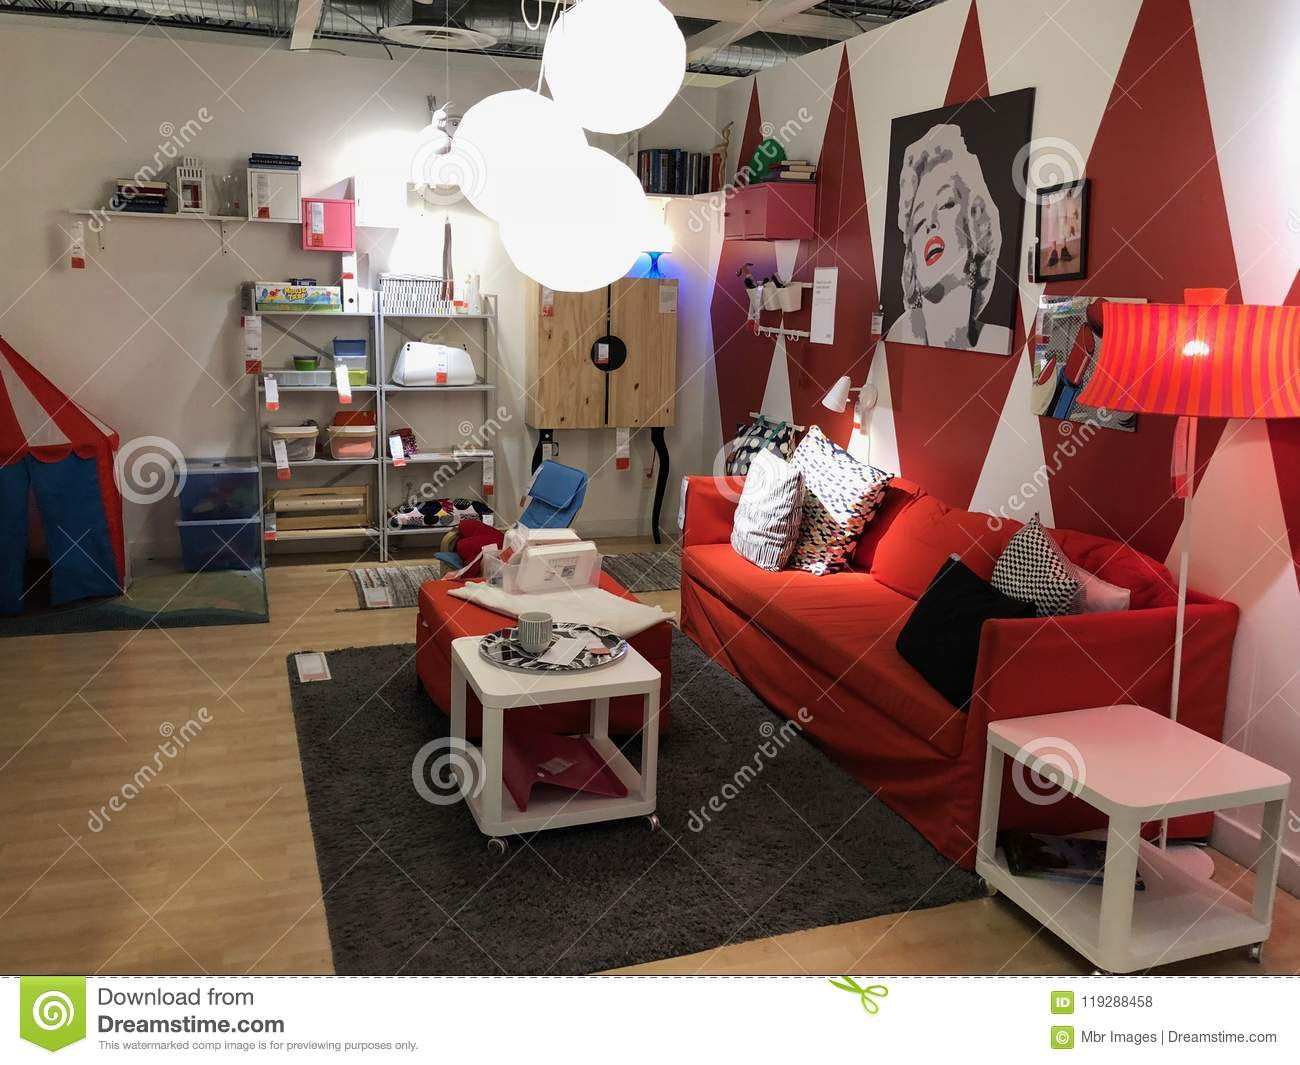 Ikea Store Editorial Stock Photo Image Of Fixtures 119288458